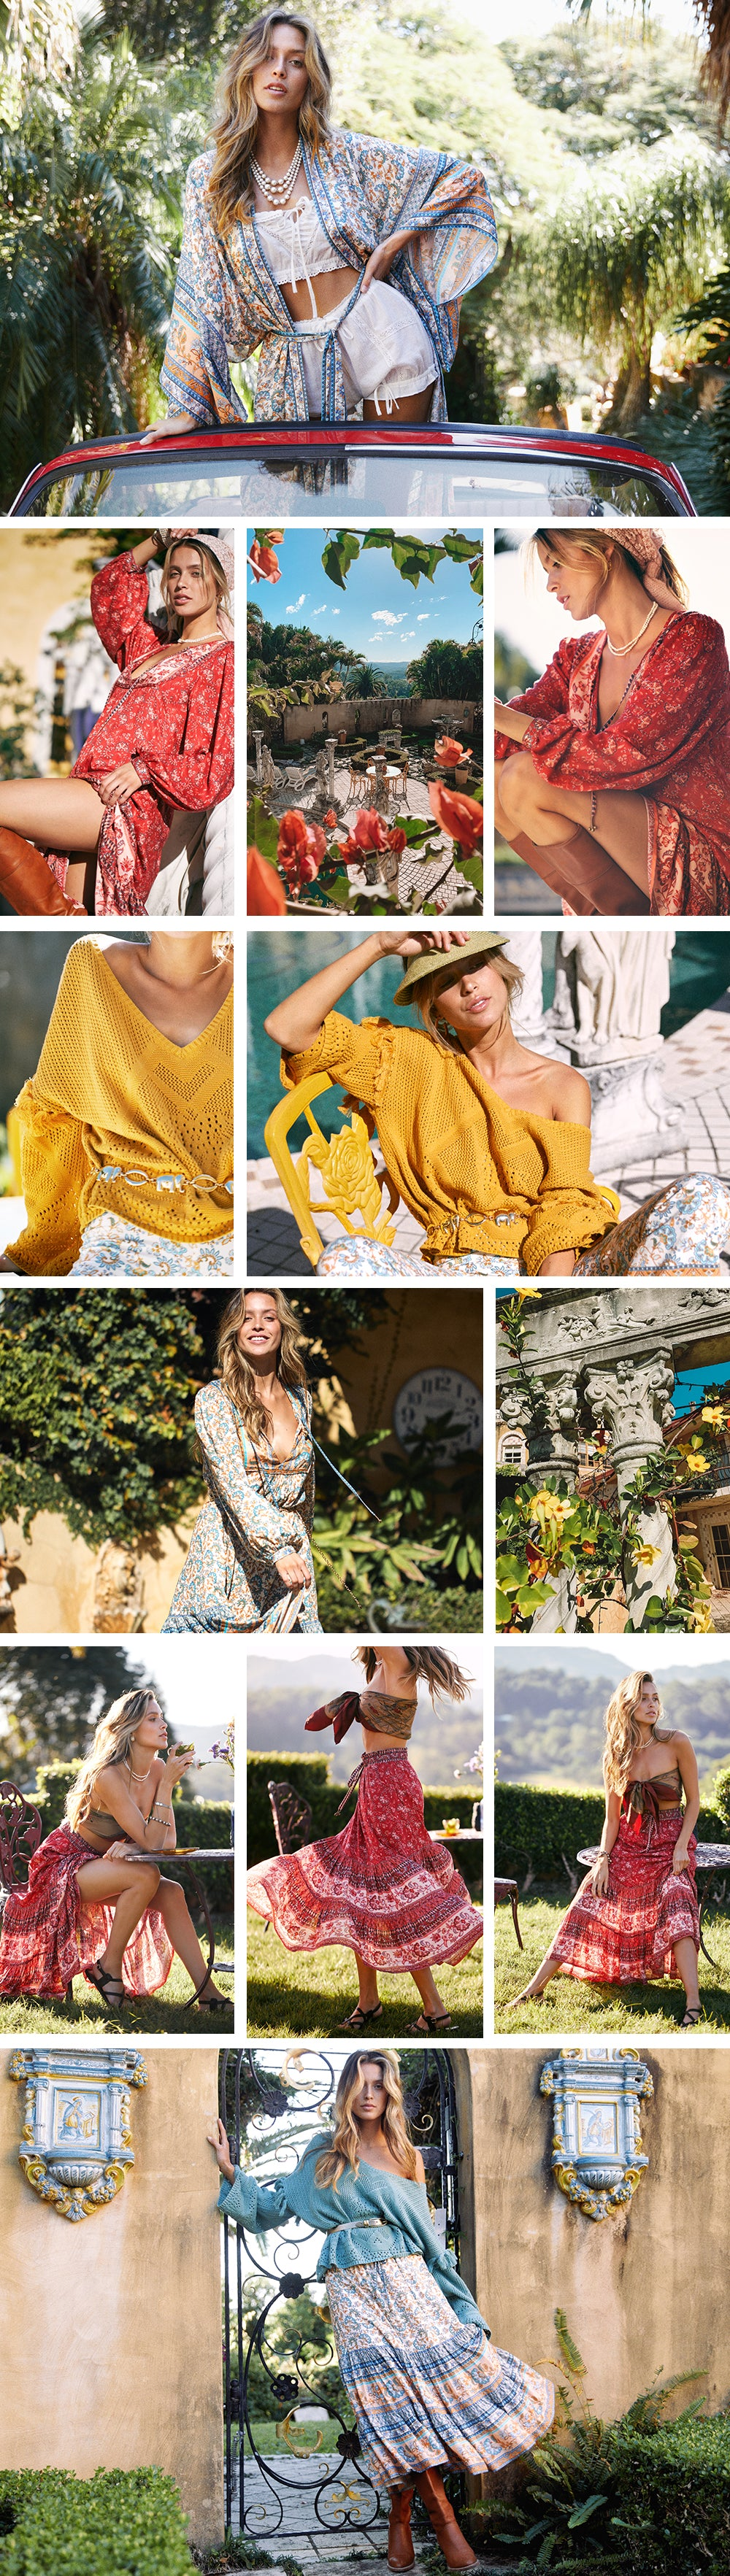 The new Bohemian Clothing Collection L'Amour from Arnhem sustainable fashion brand